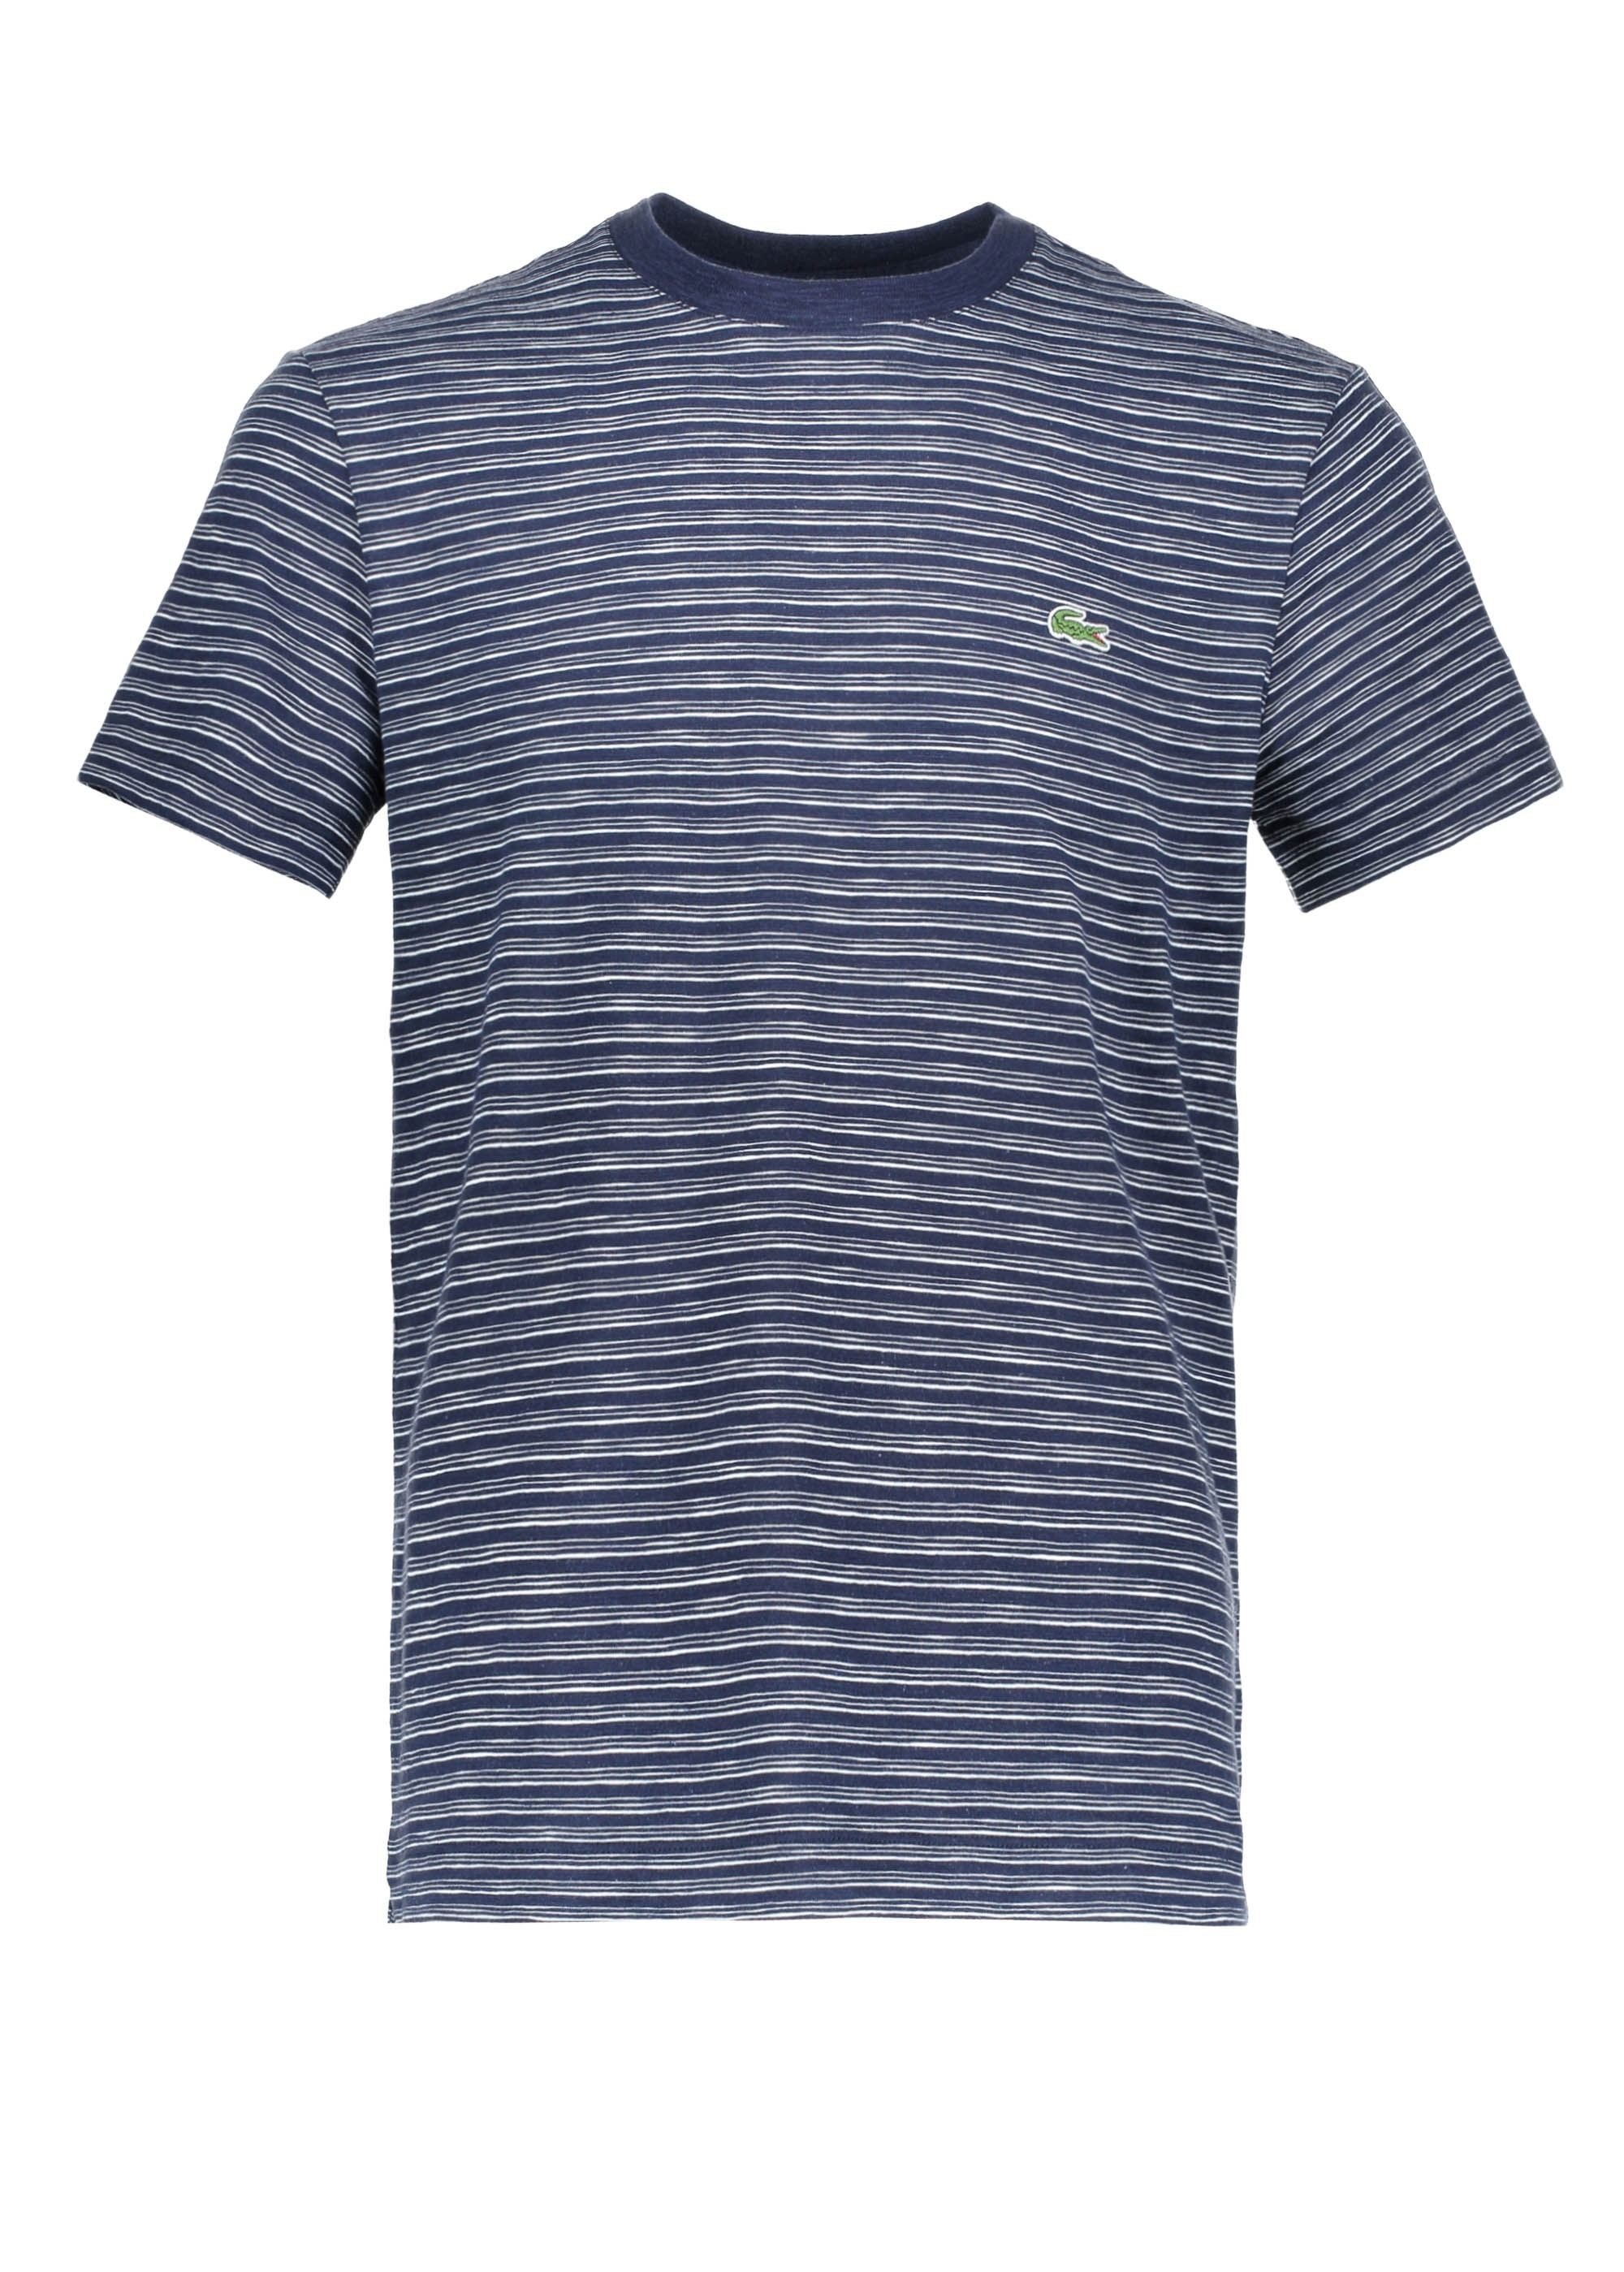 7248b681 Lacoste Stripe T-Shirt - Navy Blue / Flour - T-shirts from Triads UK